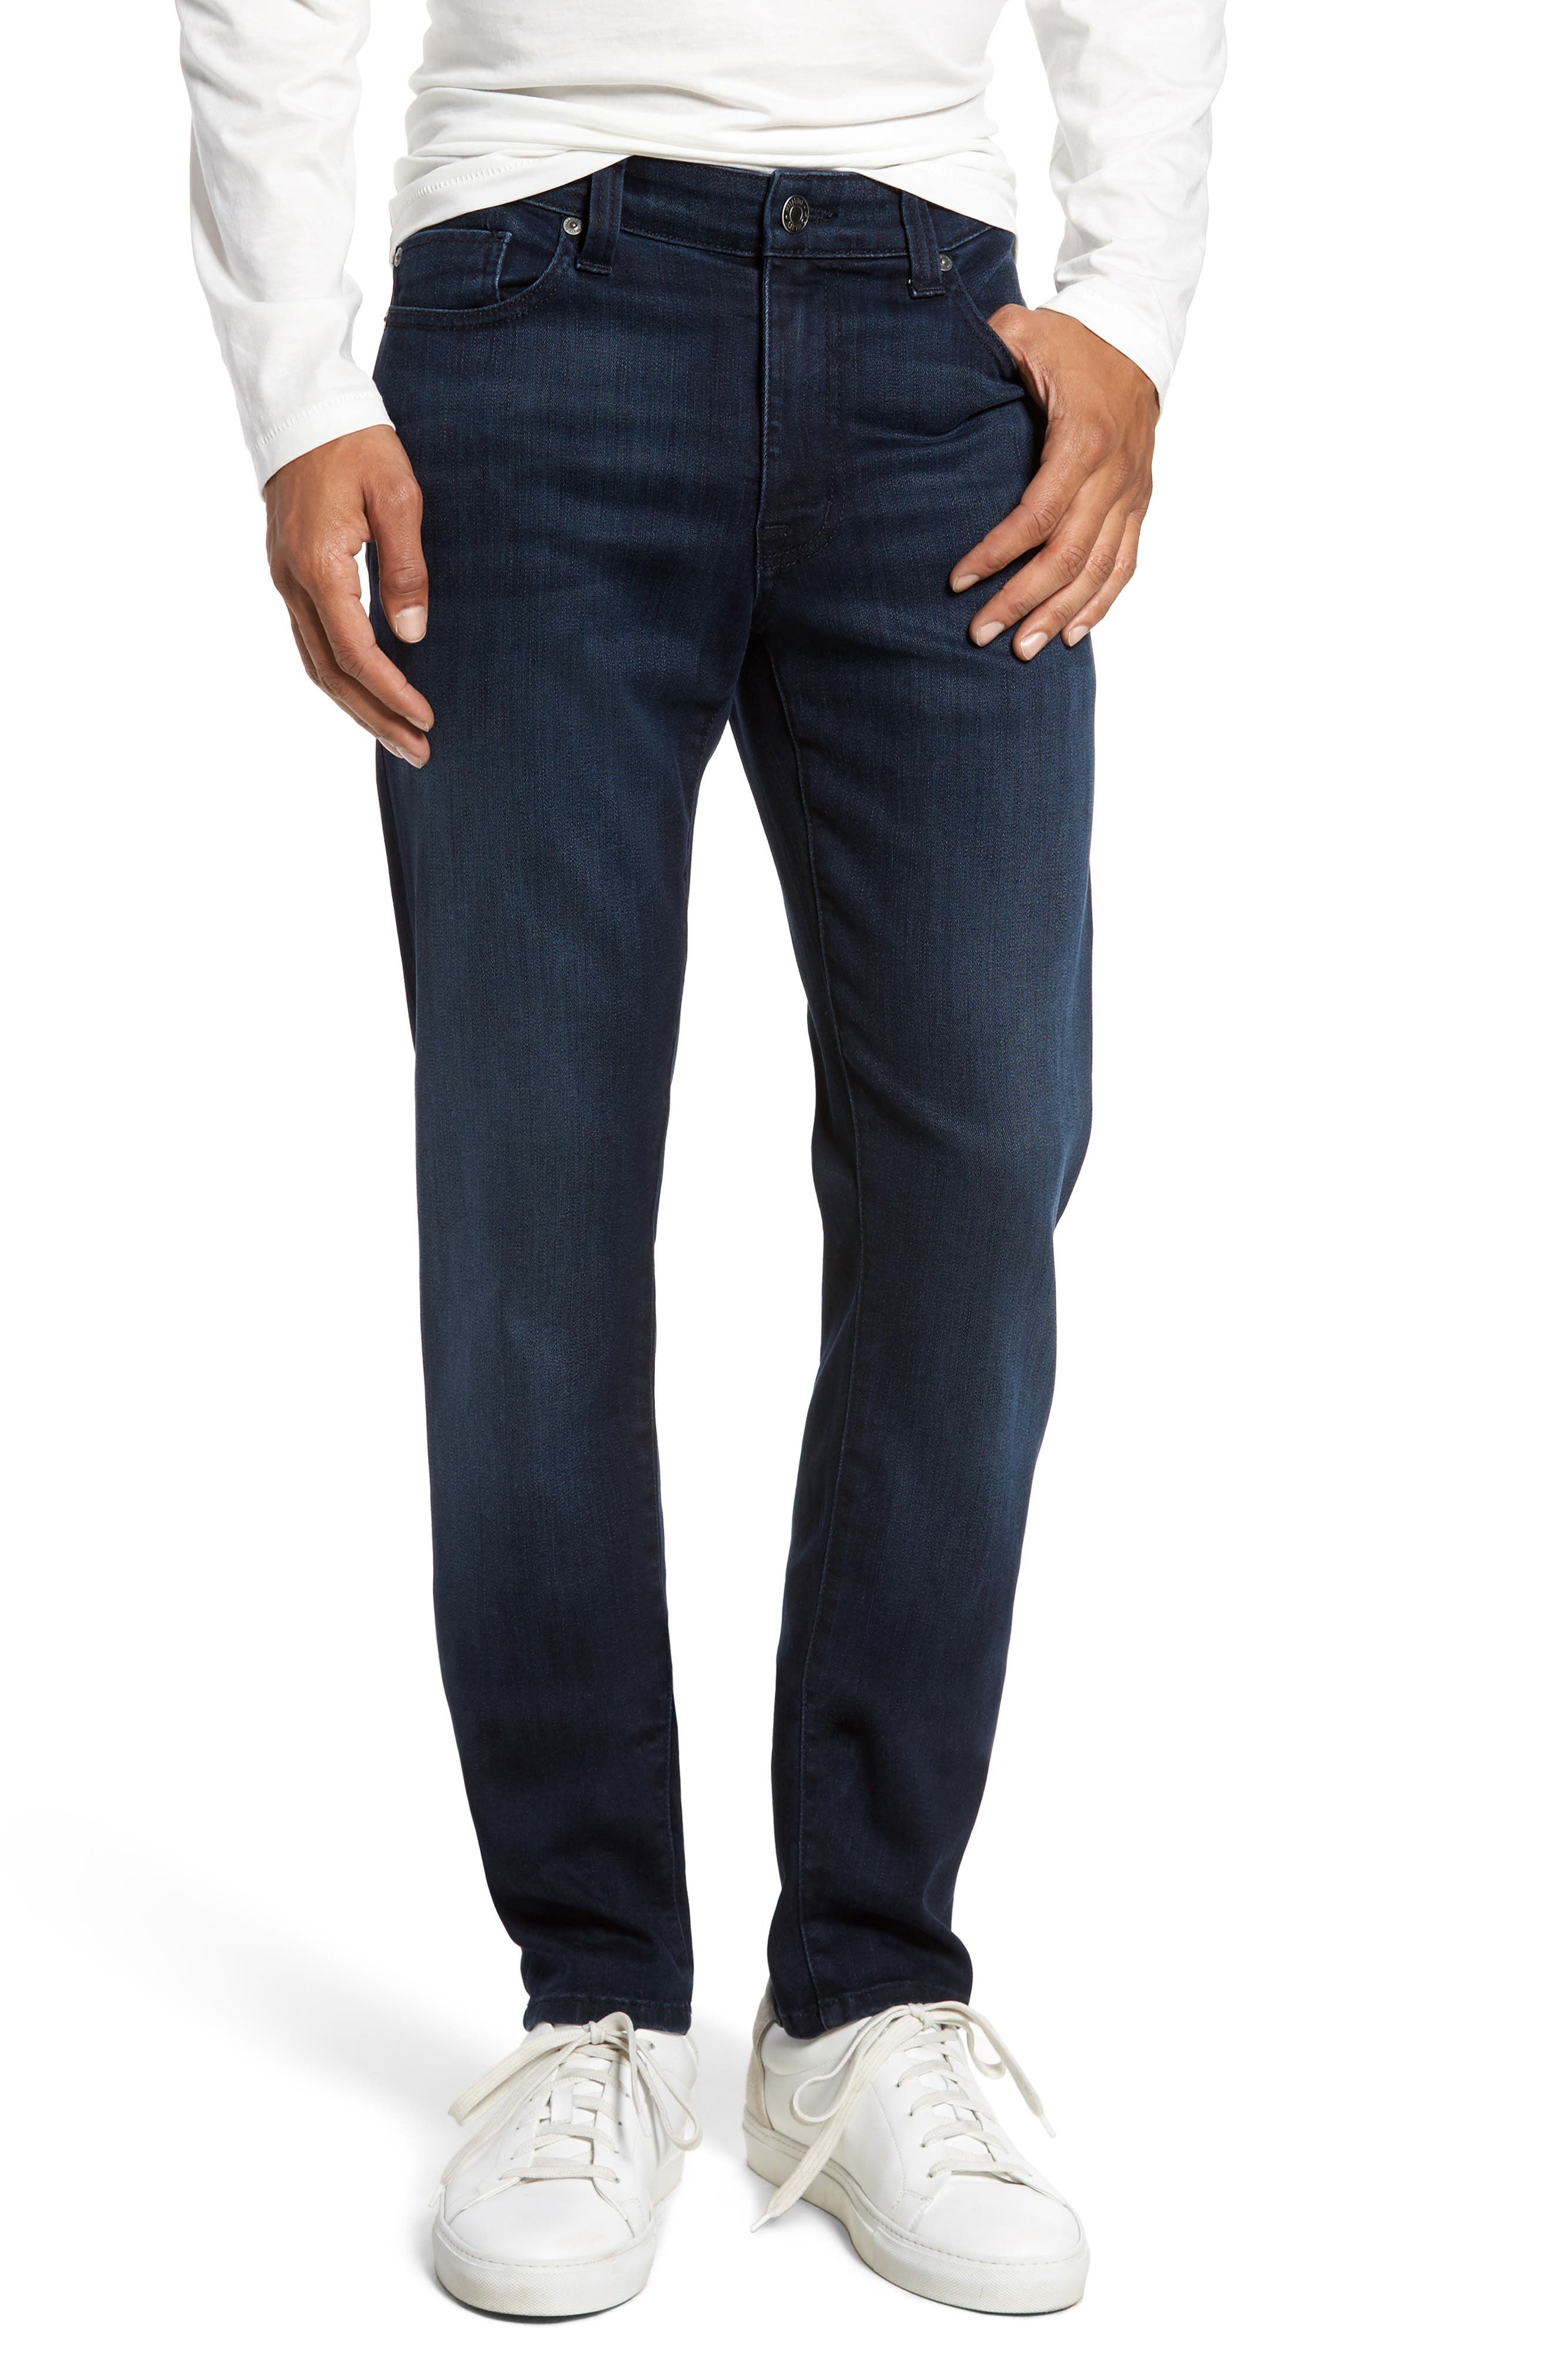 Fidelity Denim Torino Slim Fit Jeans (Fade to Blue)